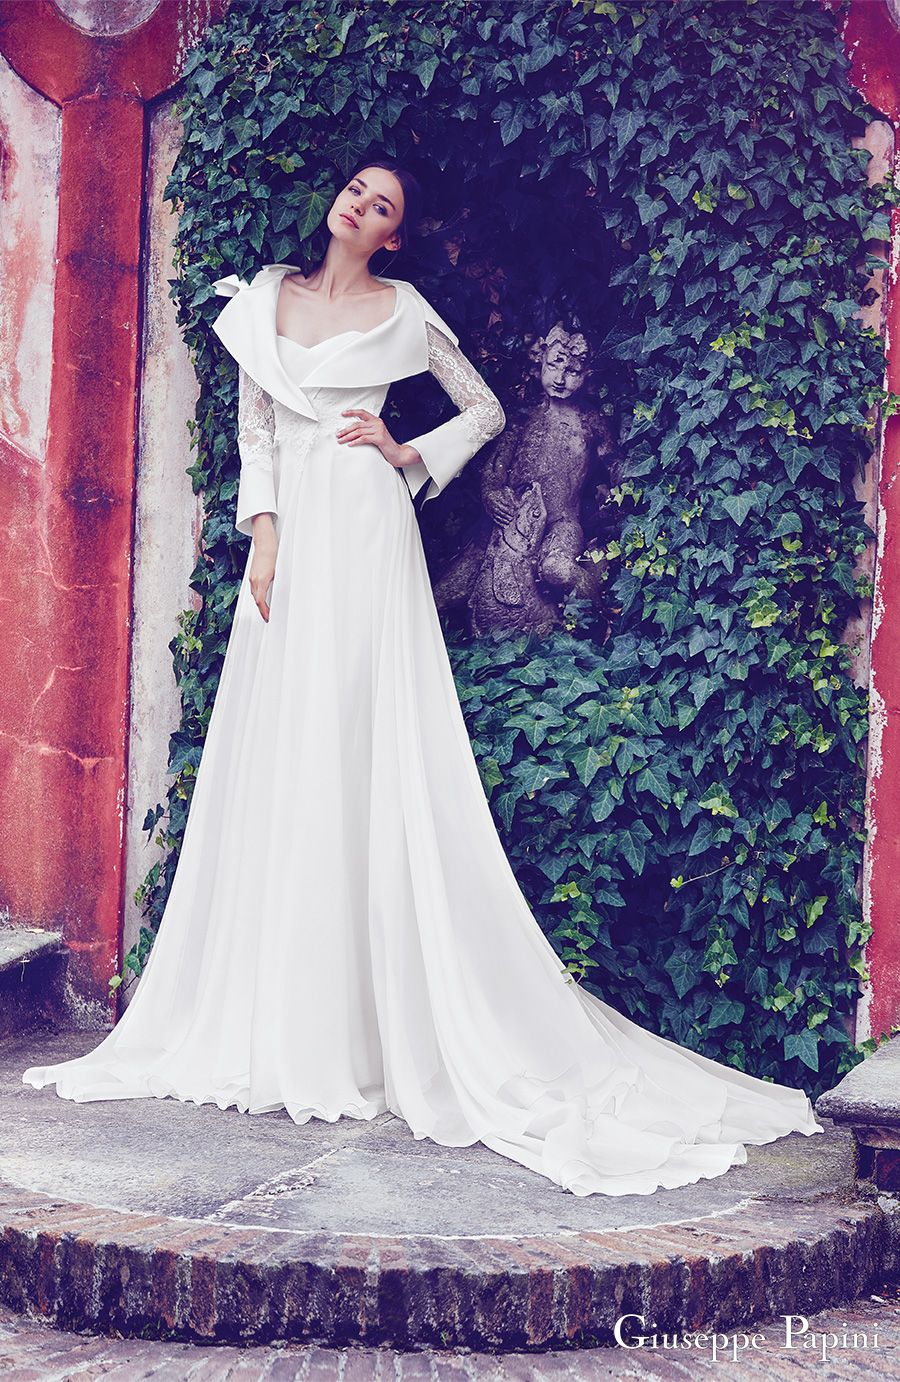 Giuseppe papini wedding dresses u dreamy gowns made in italy